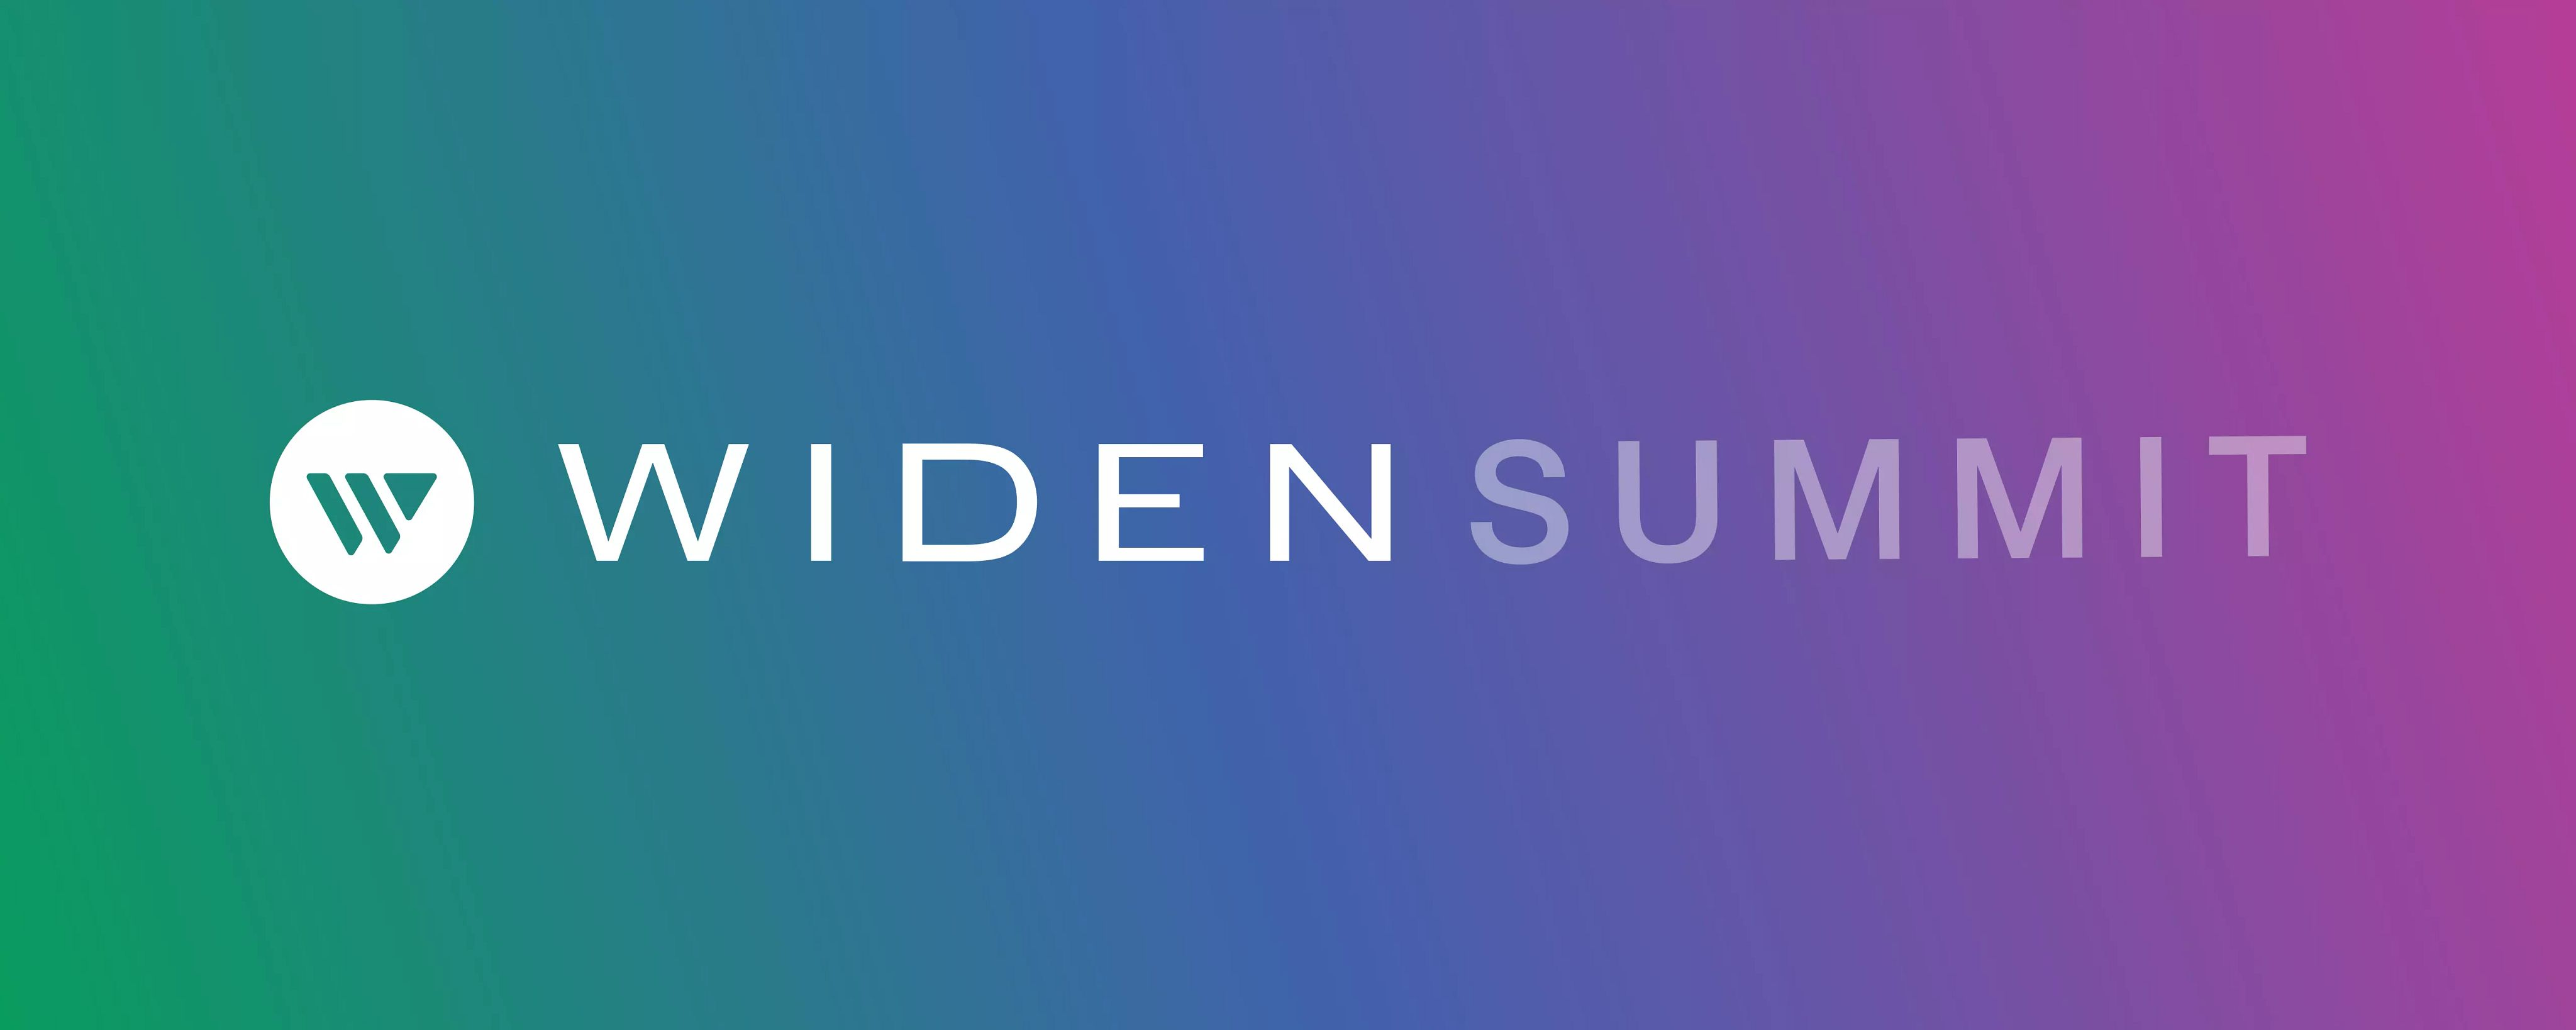 Widen Summit logo on a gradient background with green on the left fading to blue then purple then pink on the right.